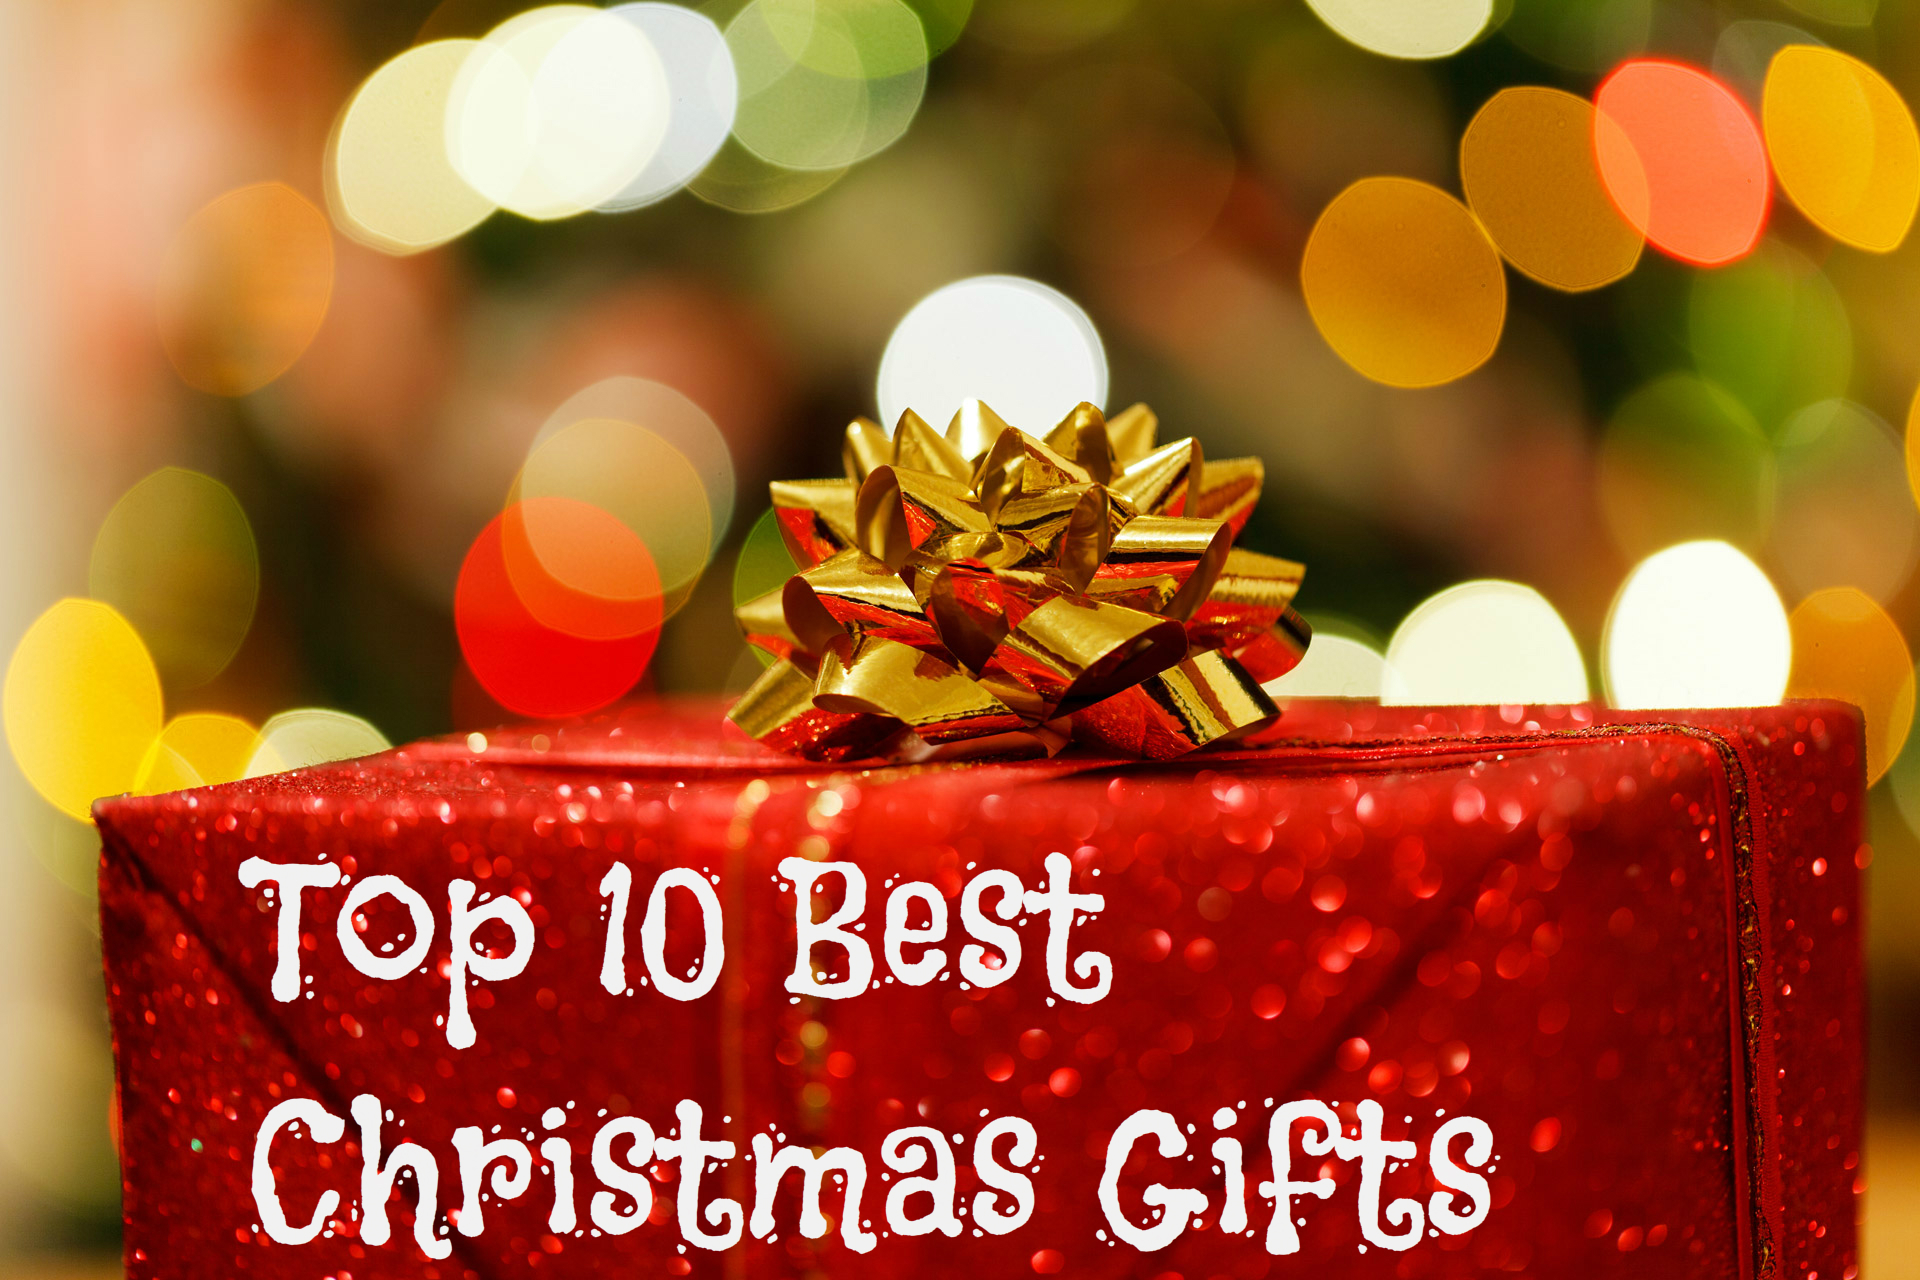 Best Christmas Gifts in 2018